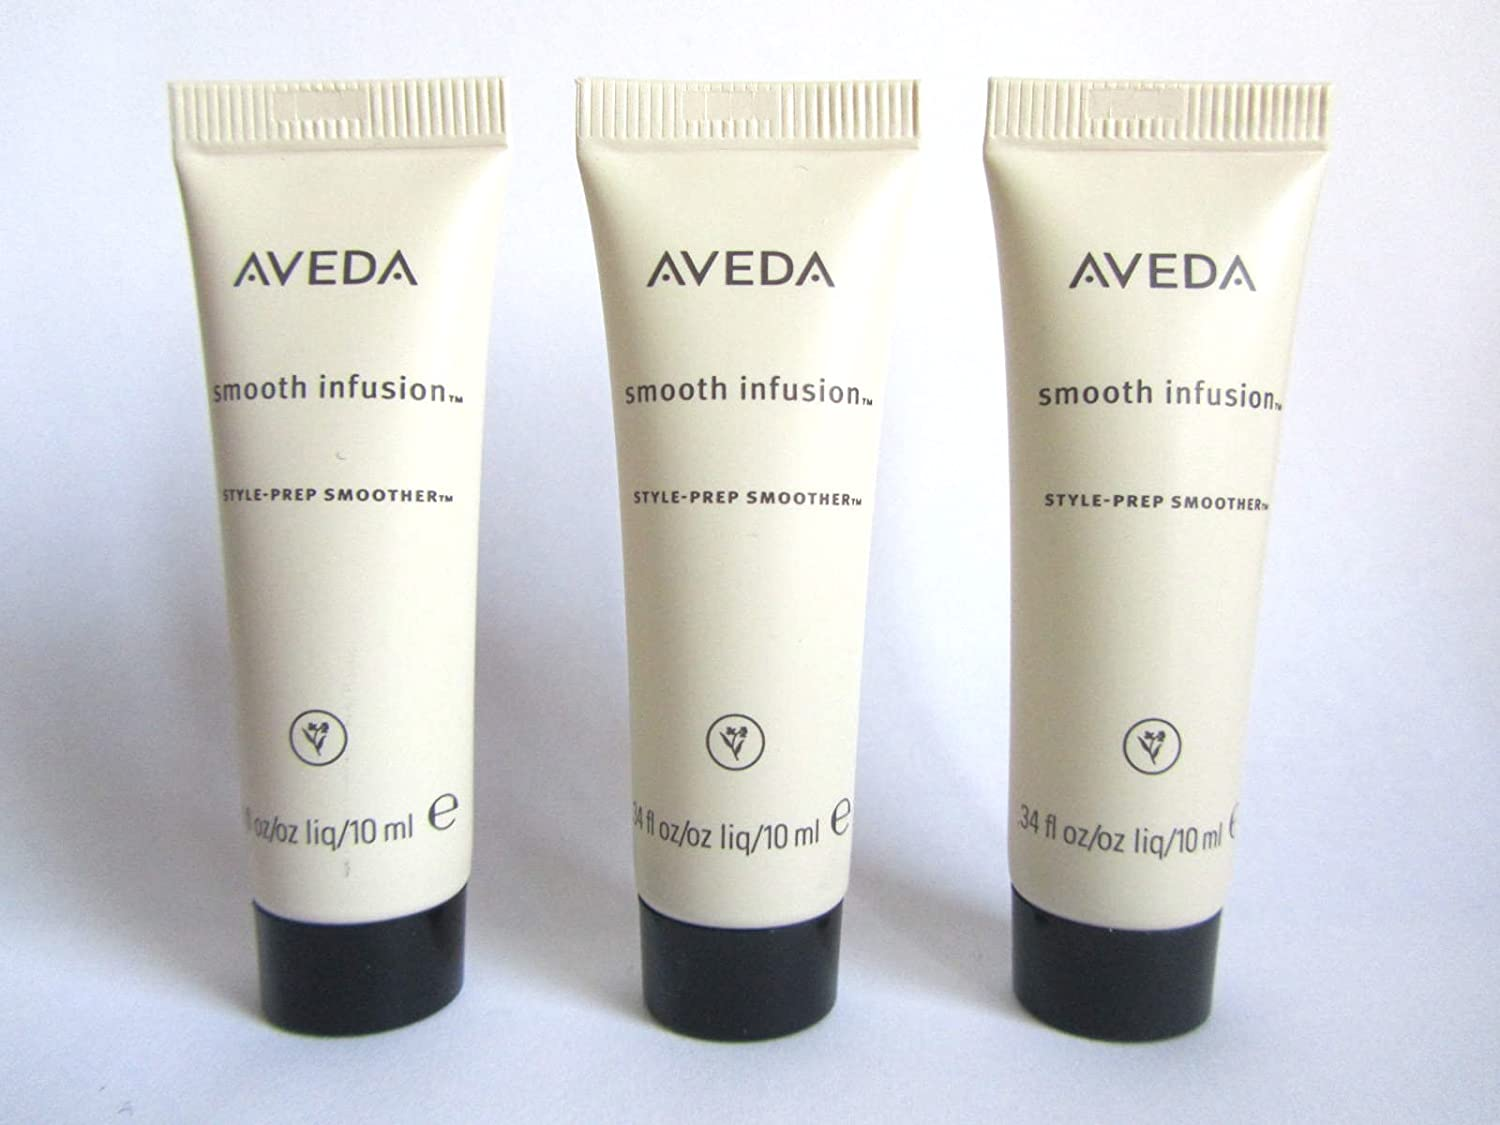 Aveda Aveda Smooth Infusion Style Prep Smoother for Hair Set of 3 Each 0.34 oz